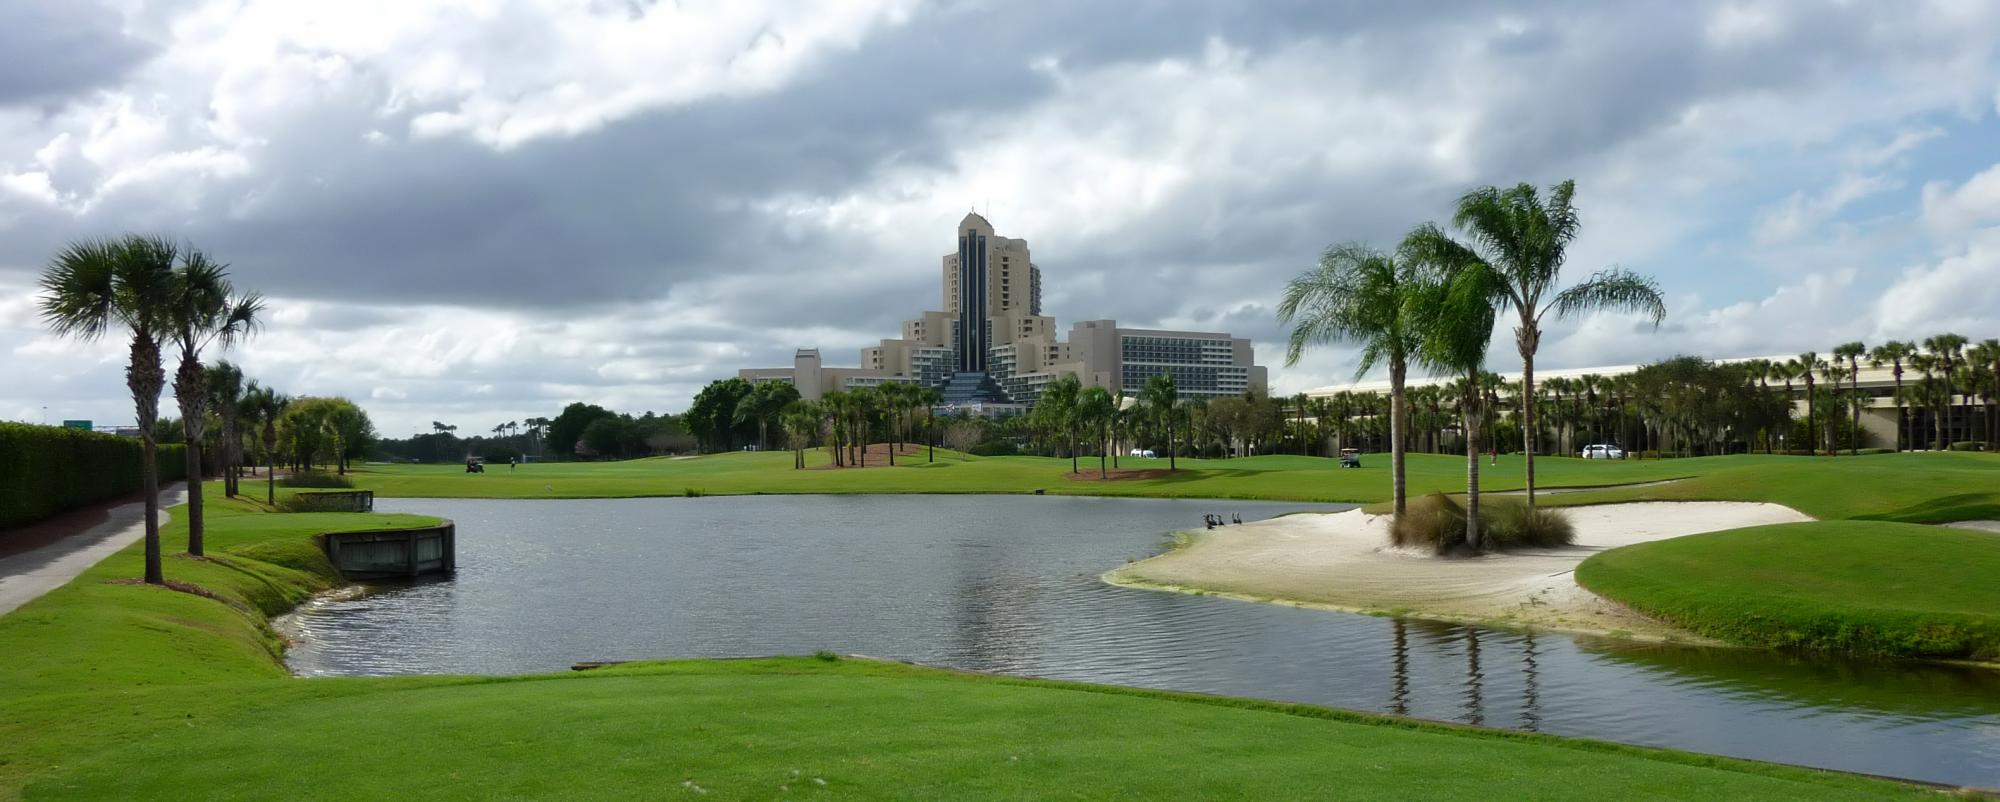 Hawk's Landing Golf Course carries among the most desirable golf course near Florida